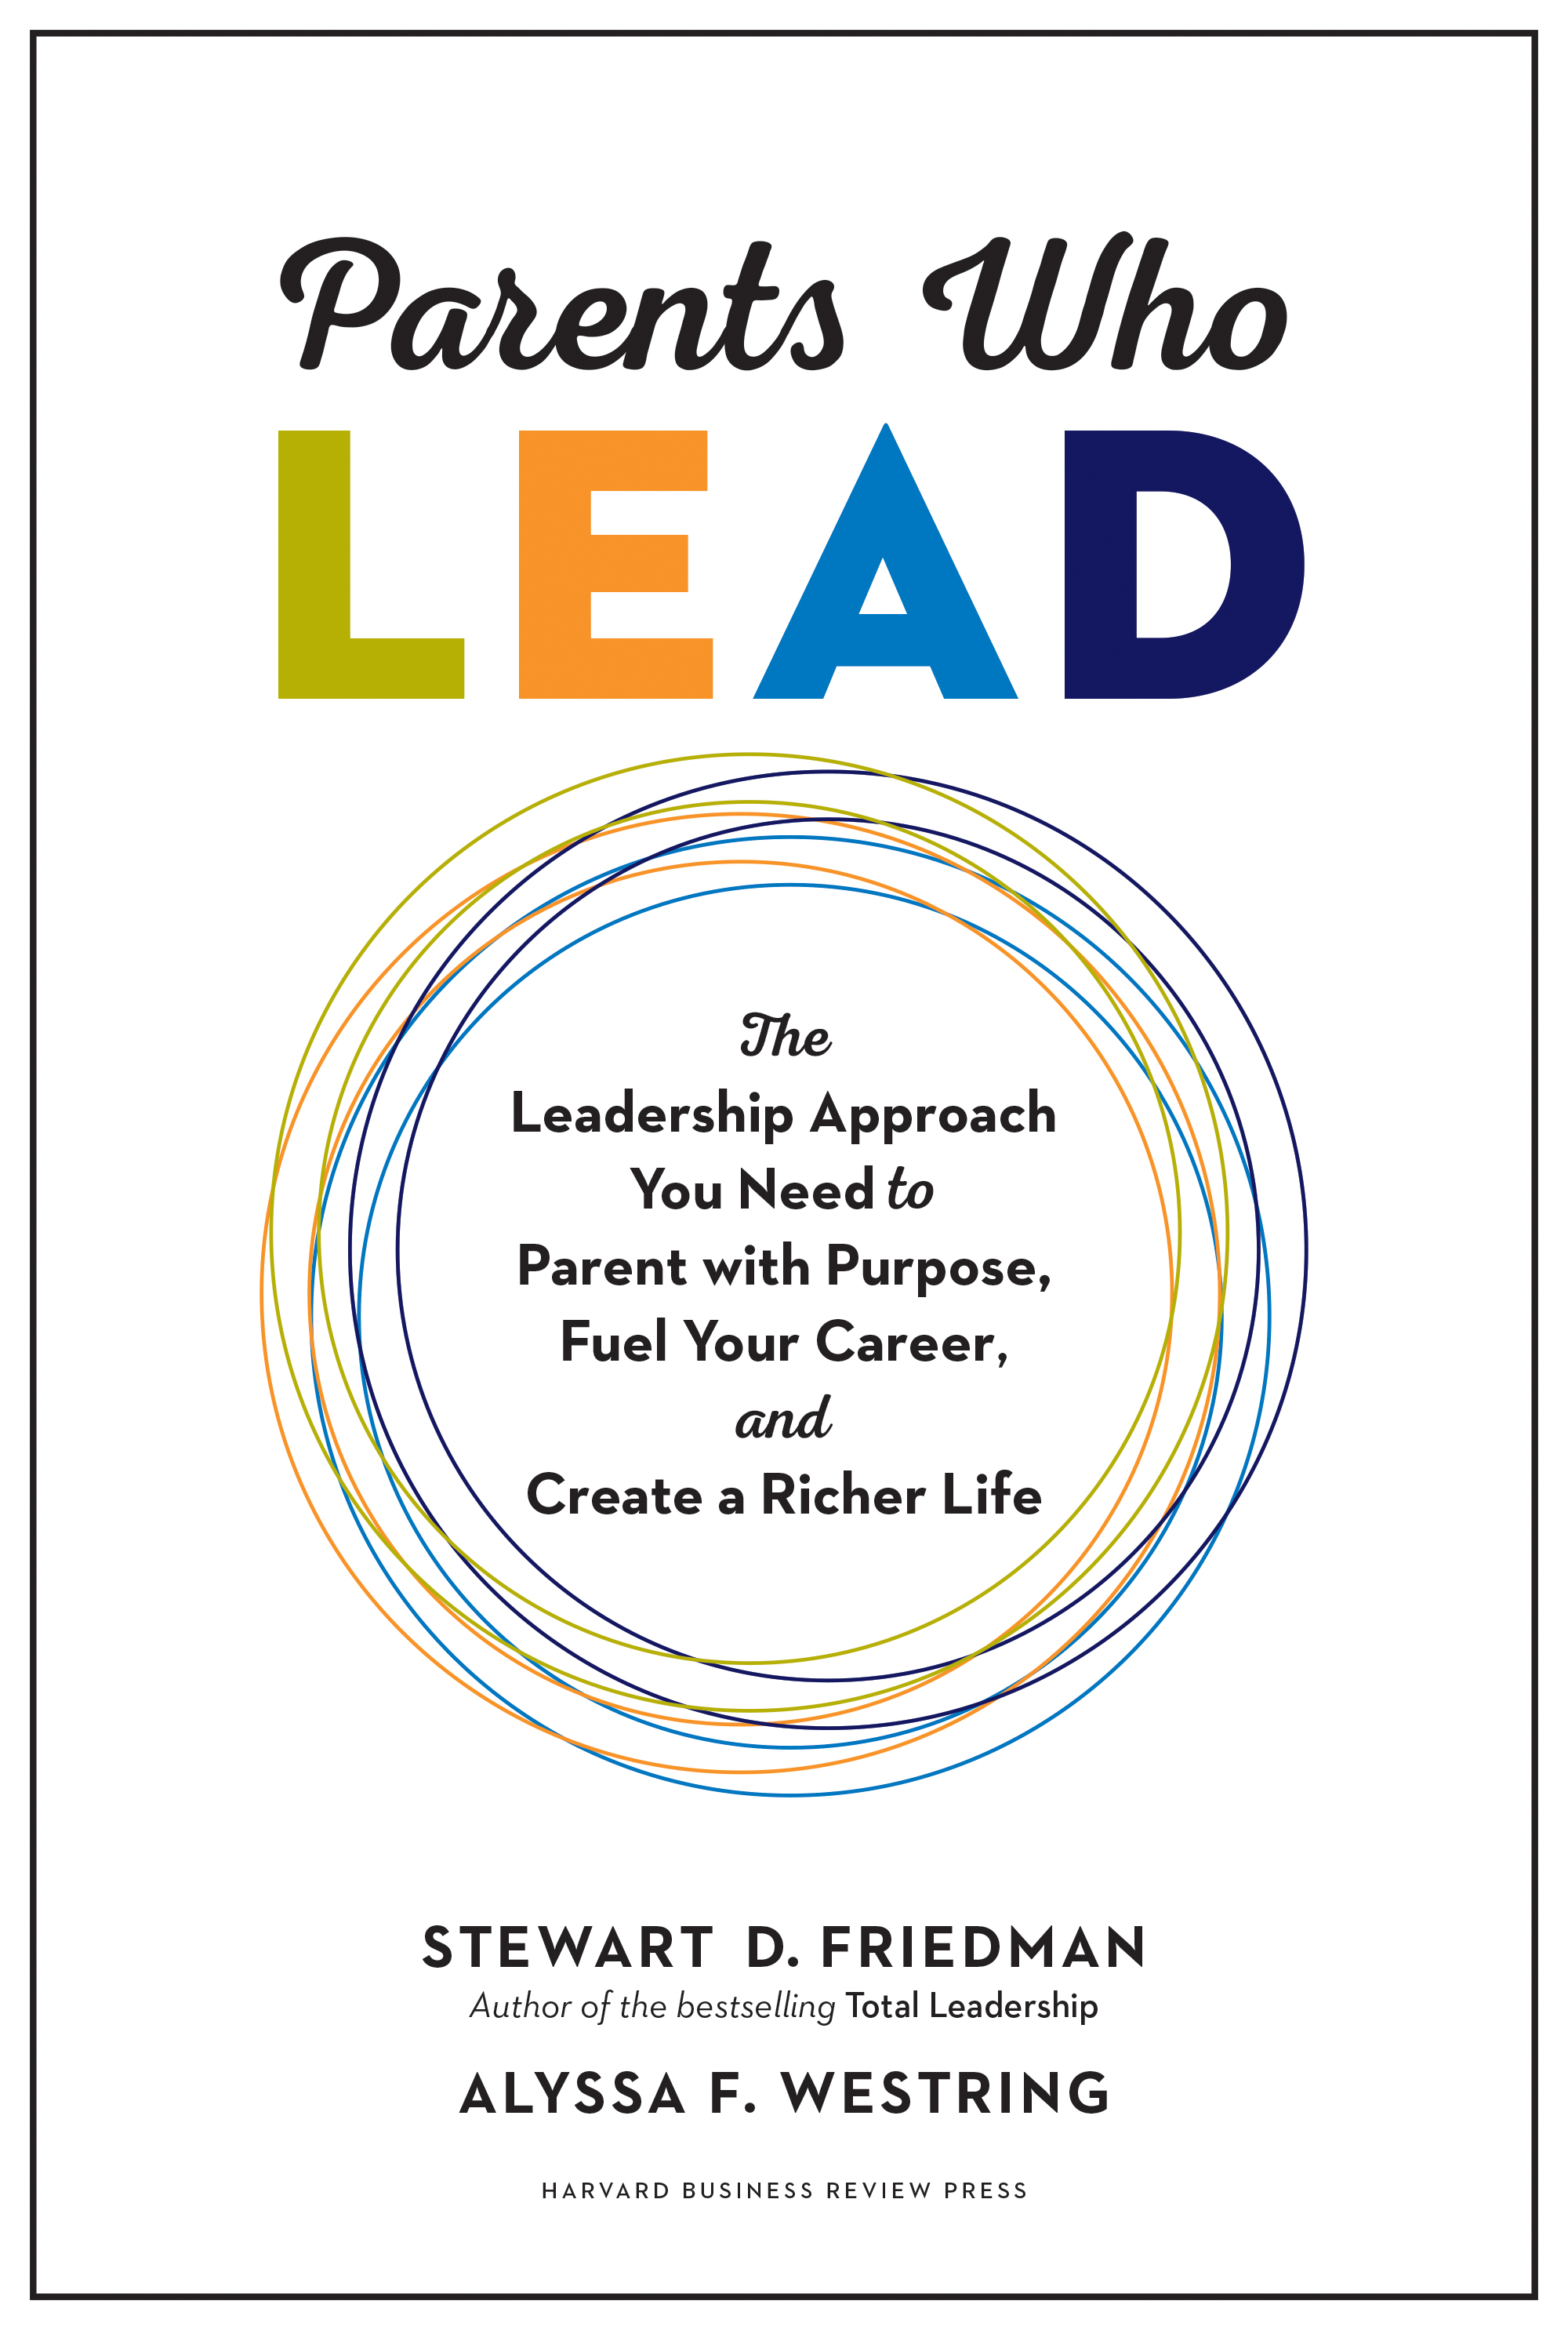 Book Parents Who Lead: The Leadership Approach You Need to Parent with Purpose, Fuel Your Career, and Create a Richer Life